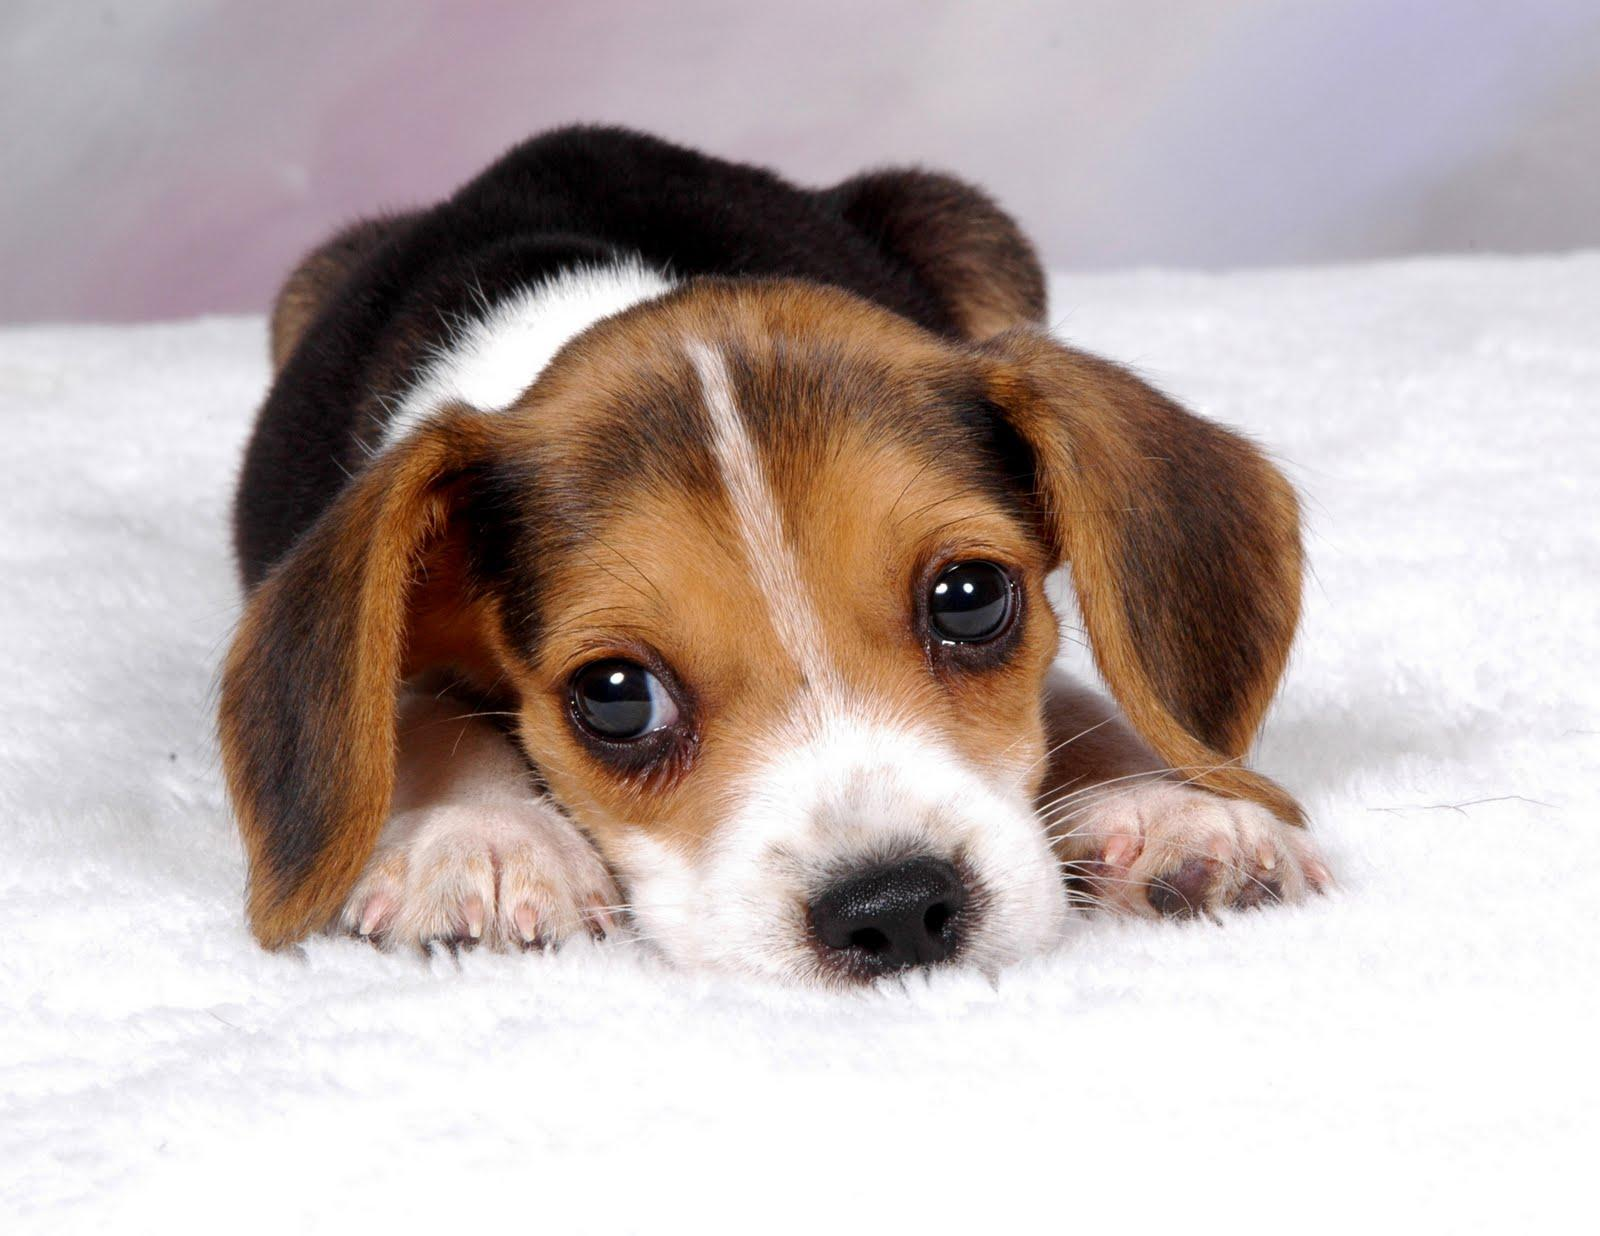 Beagle wallpapers wallpaper cave wallpapers for beagle puppy wallpaper voltagebd Images